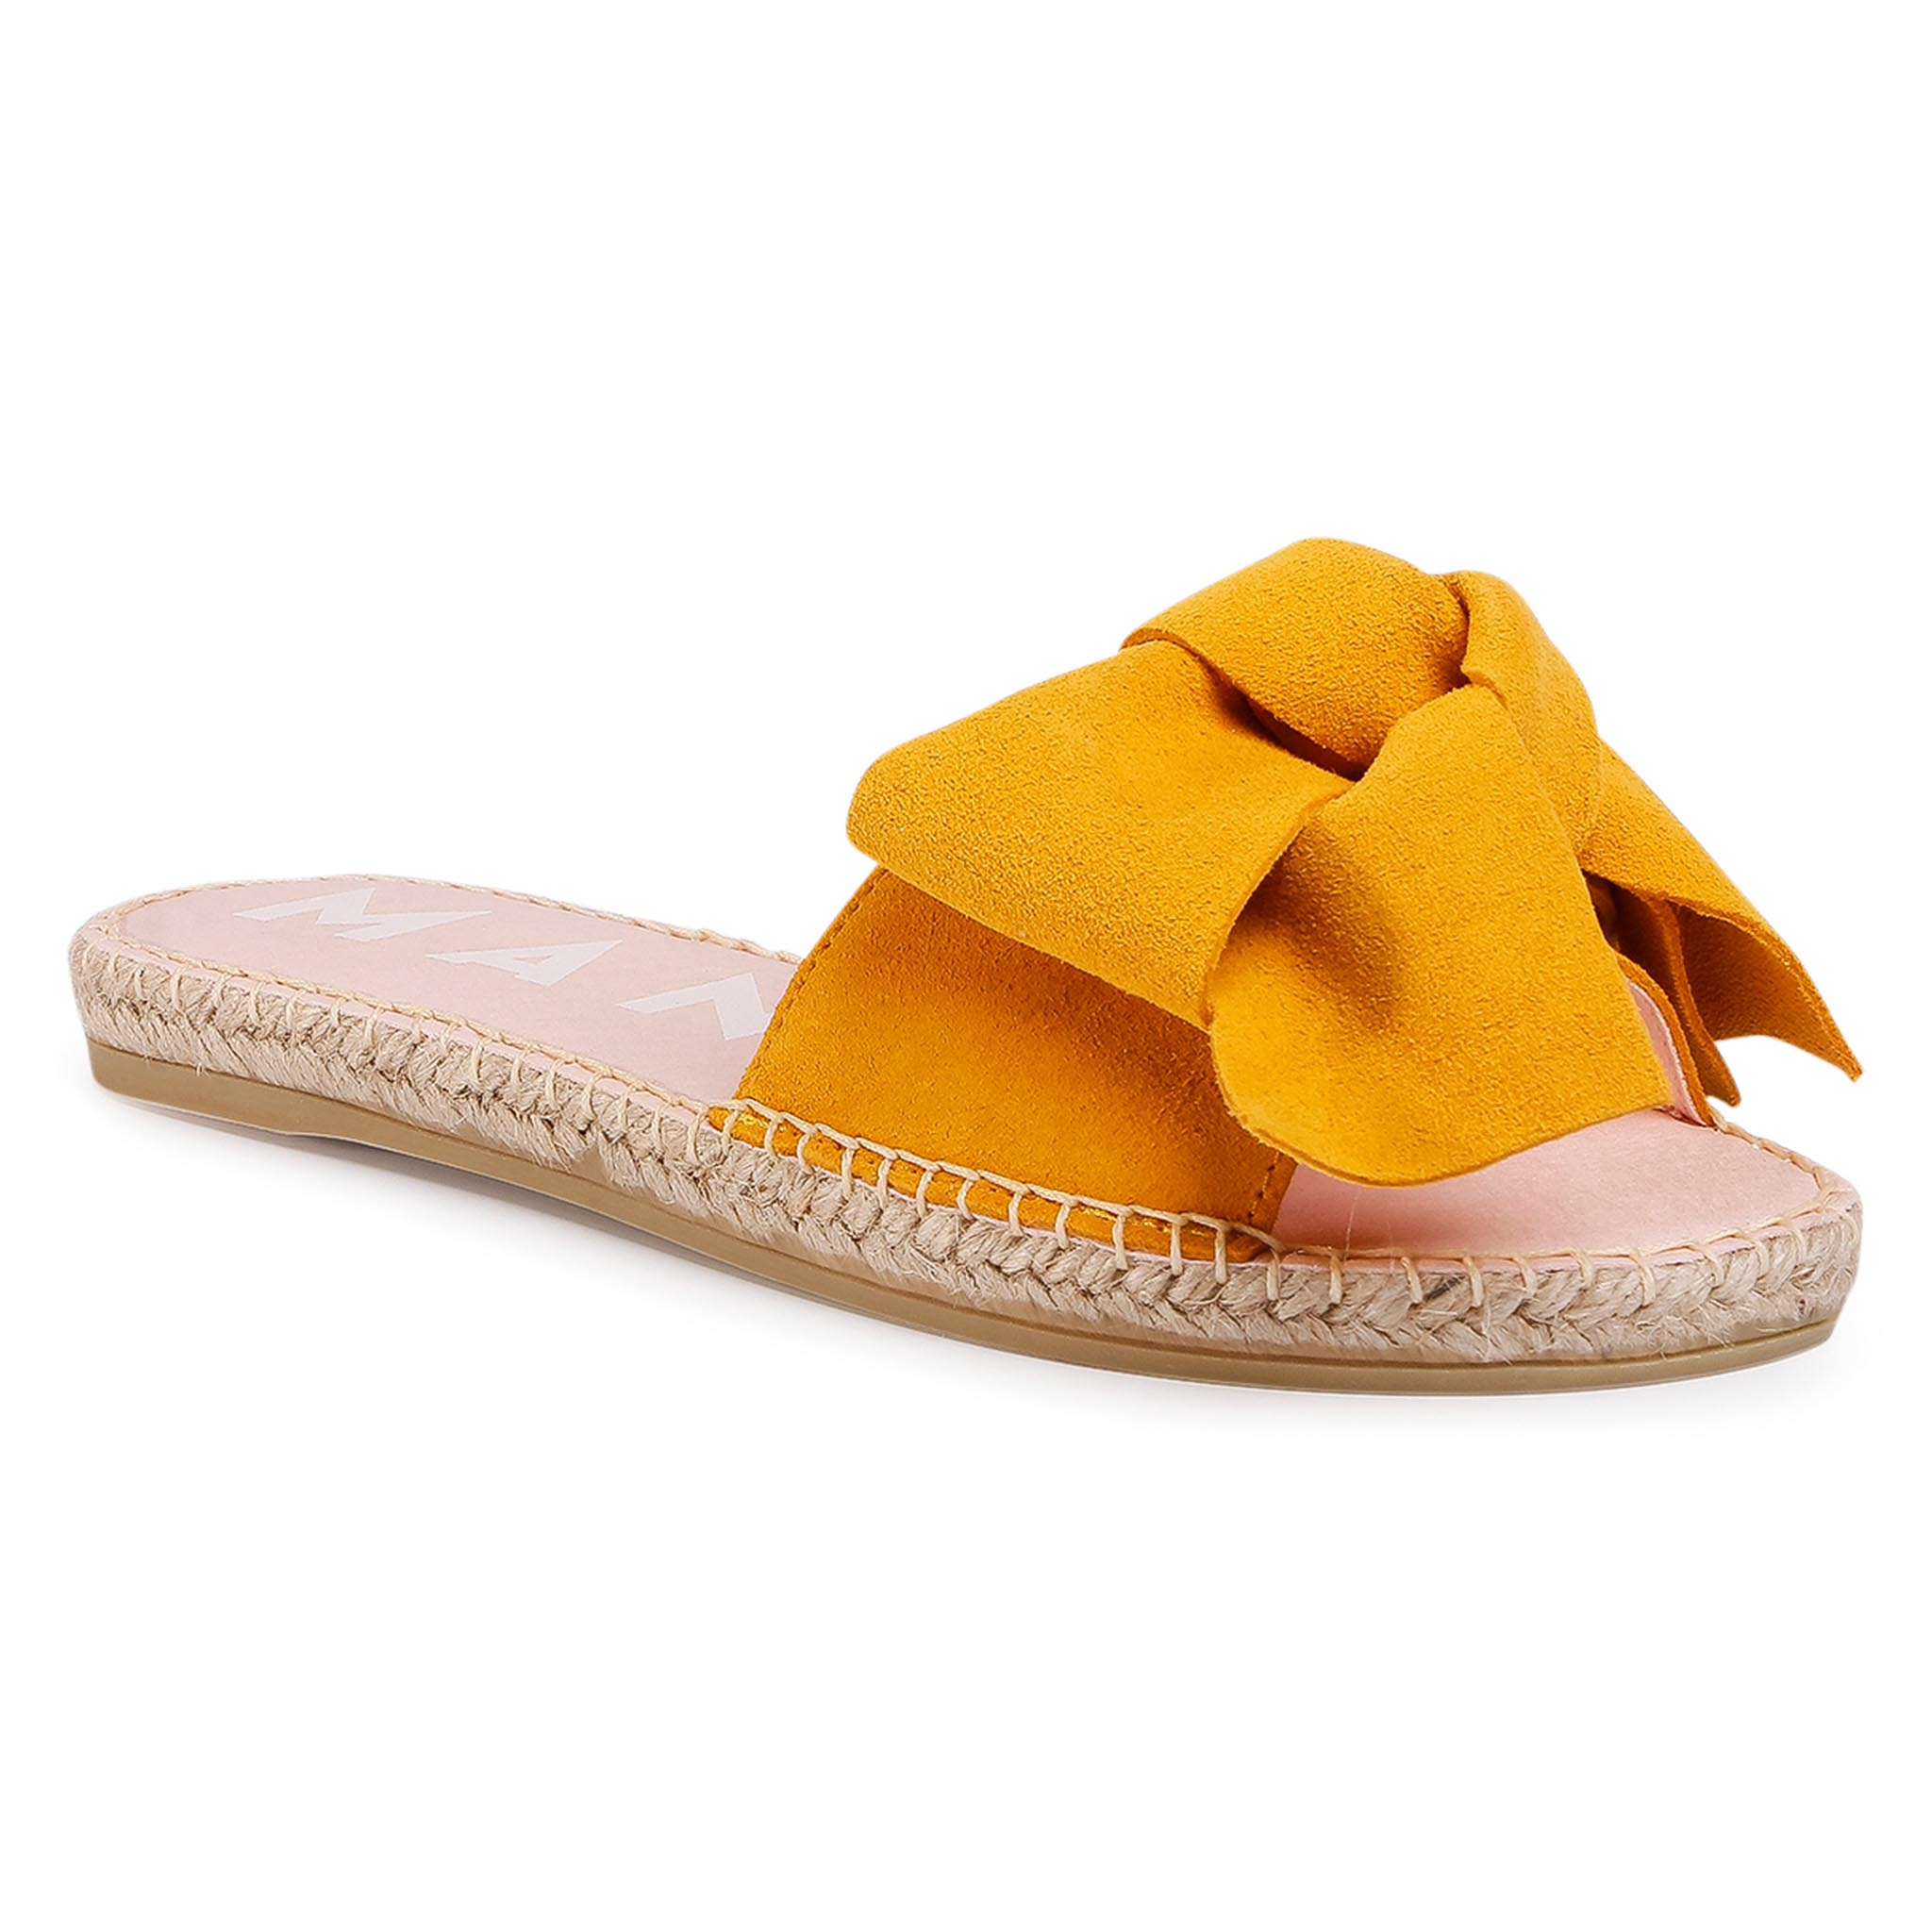 Image of Espadrilles MANEBI - Sandals With Bow M 2.4 J0 Banana